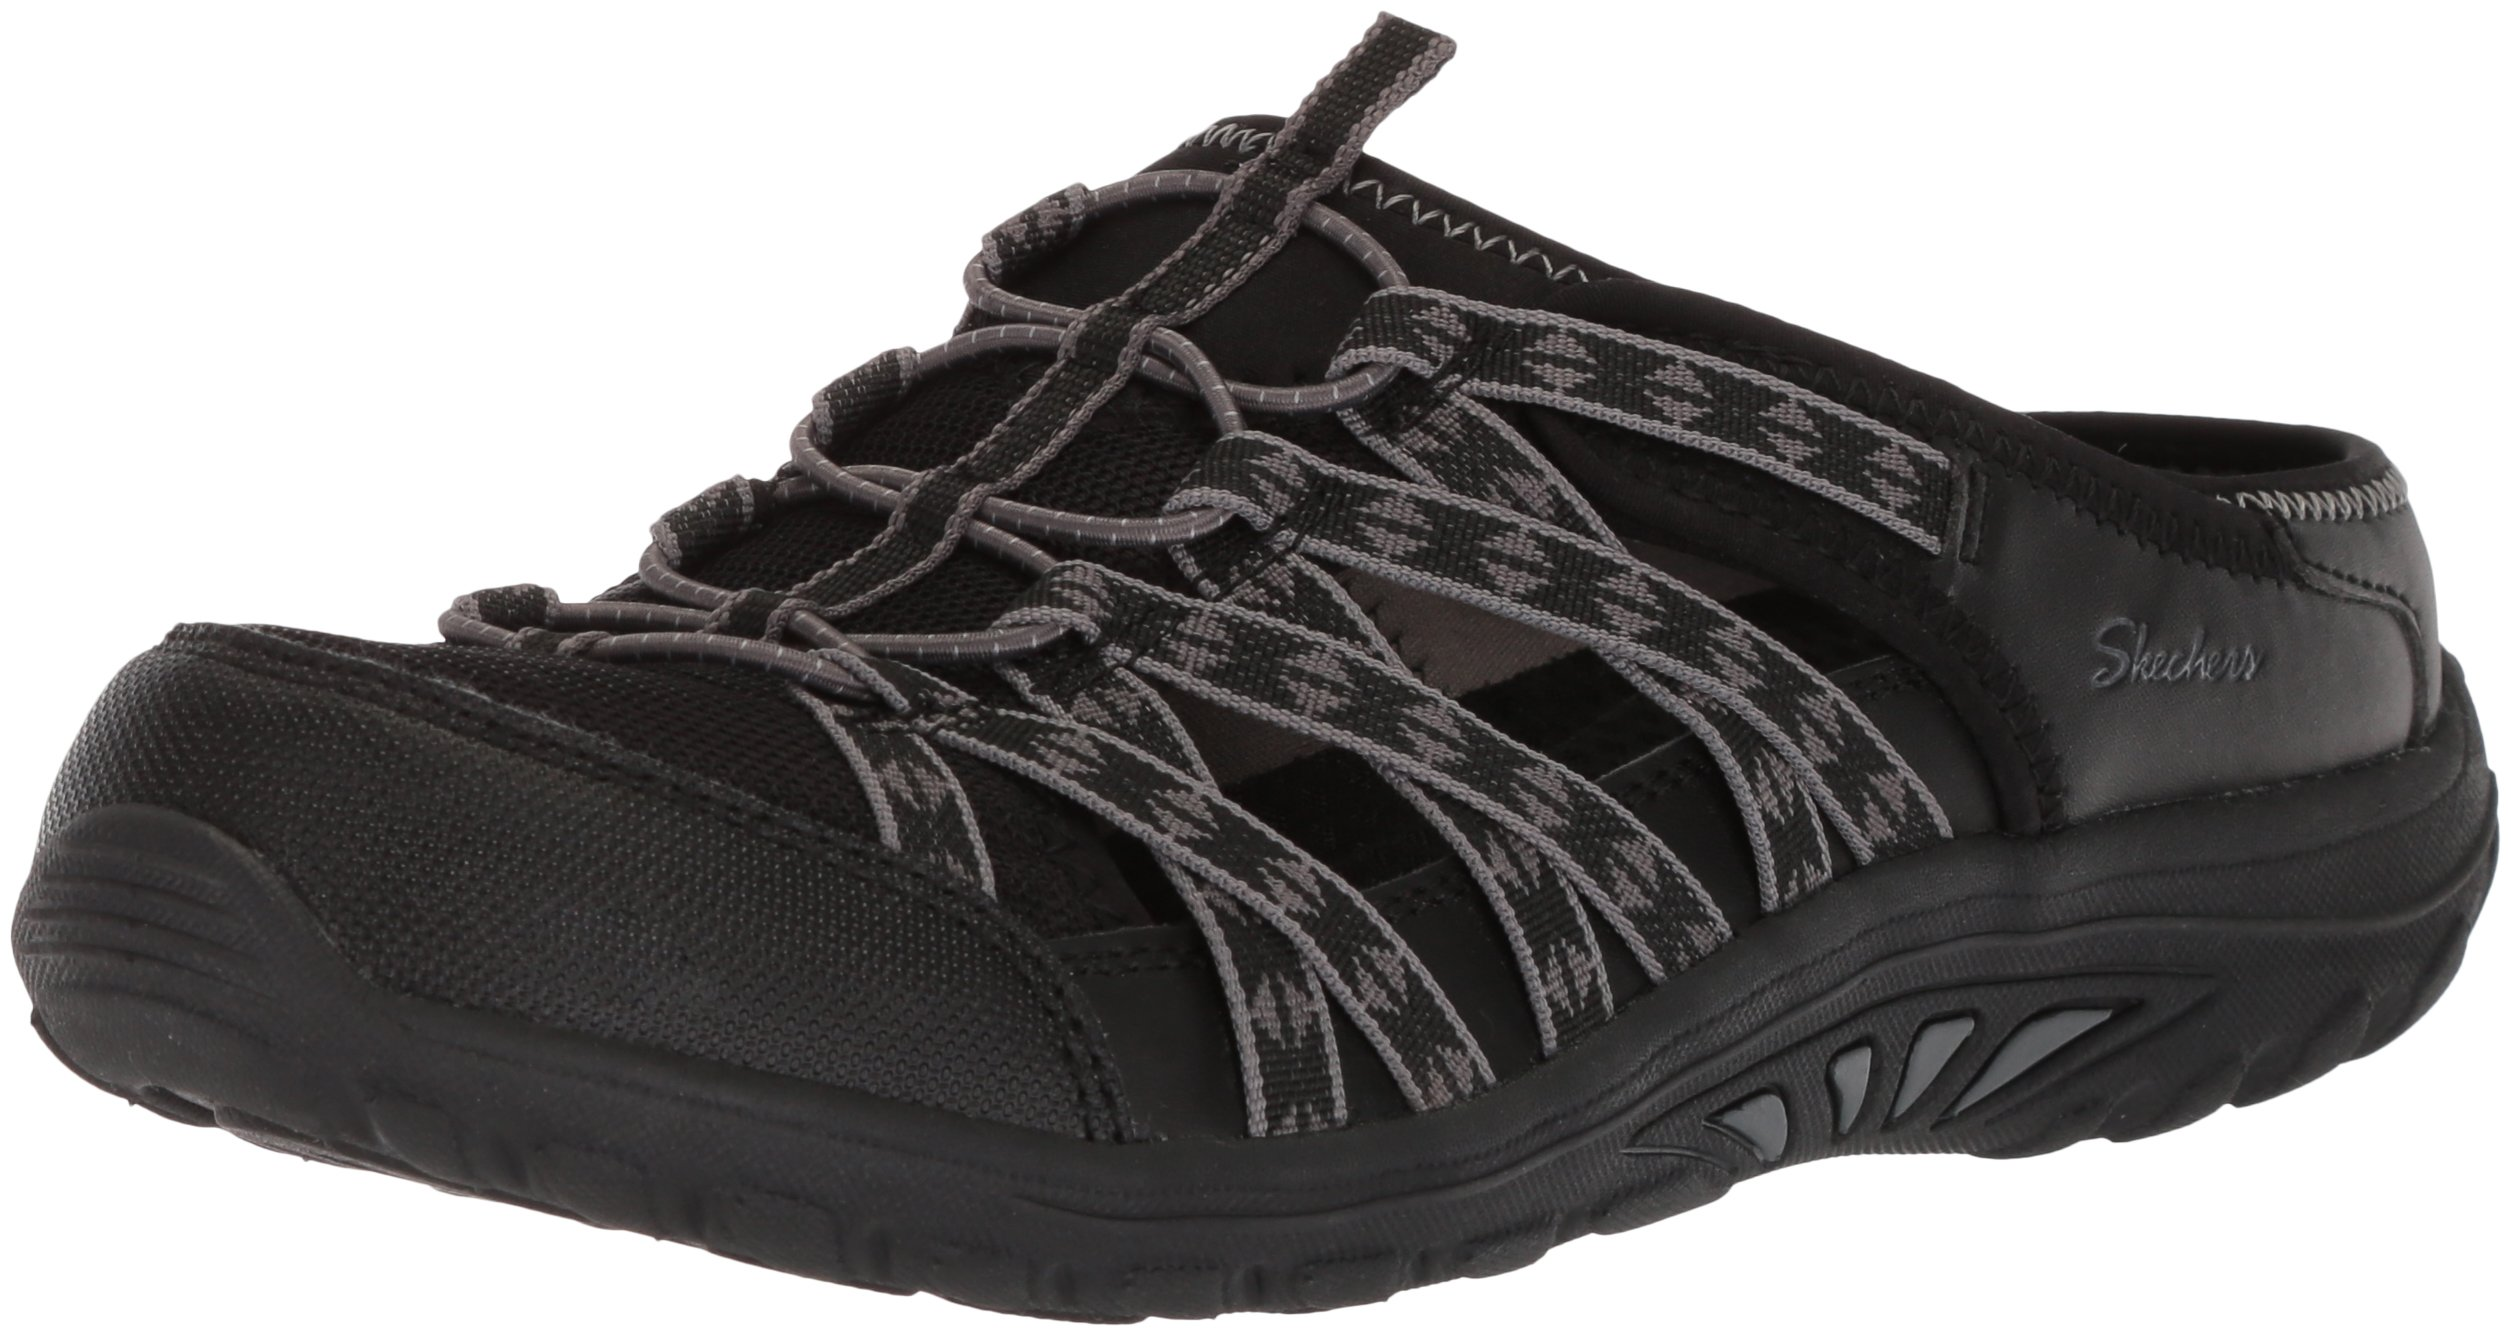 Skechers Women's Reggae Fest-Marlin-Fisherman Open Back Mule Relaxed Fit & A/C Memory Foam Water Shoe, Black, 5.5 W US